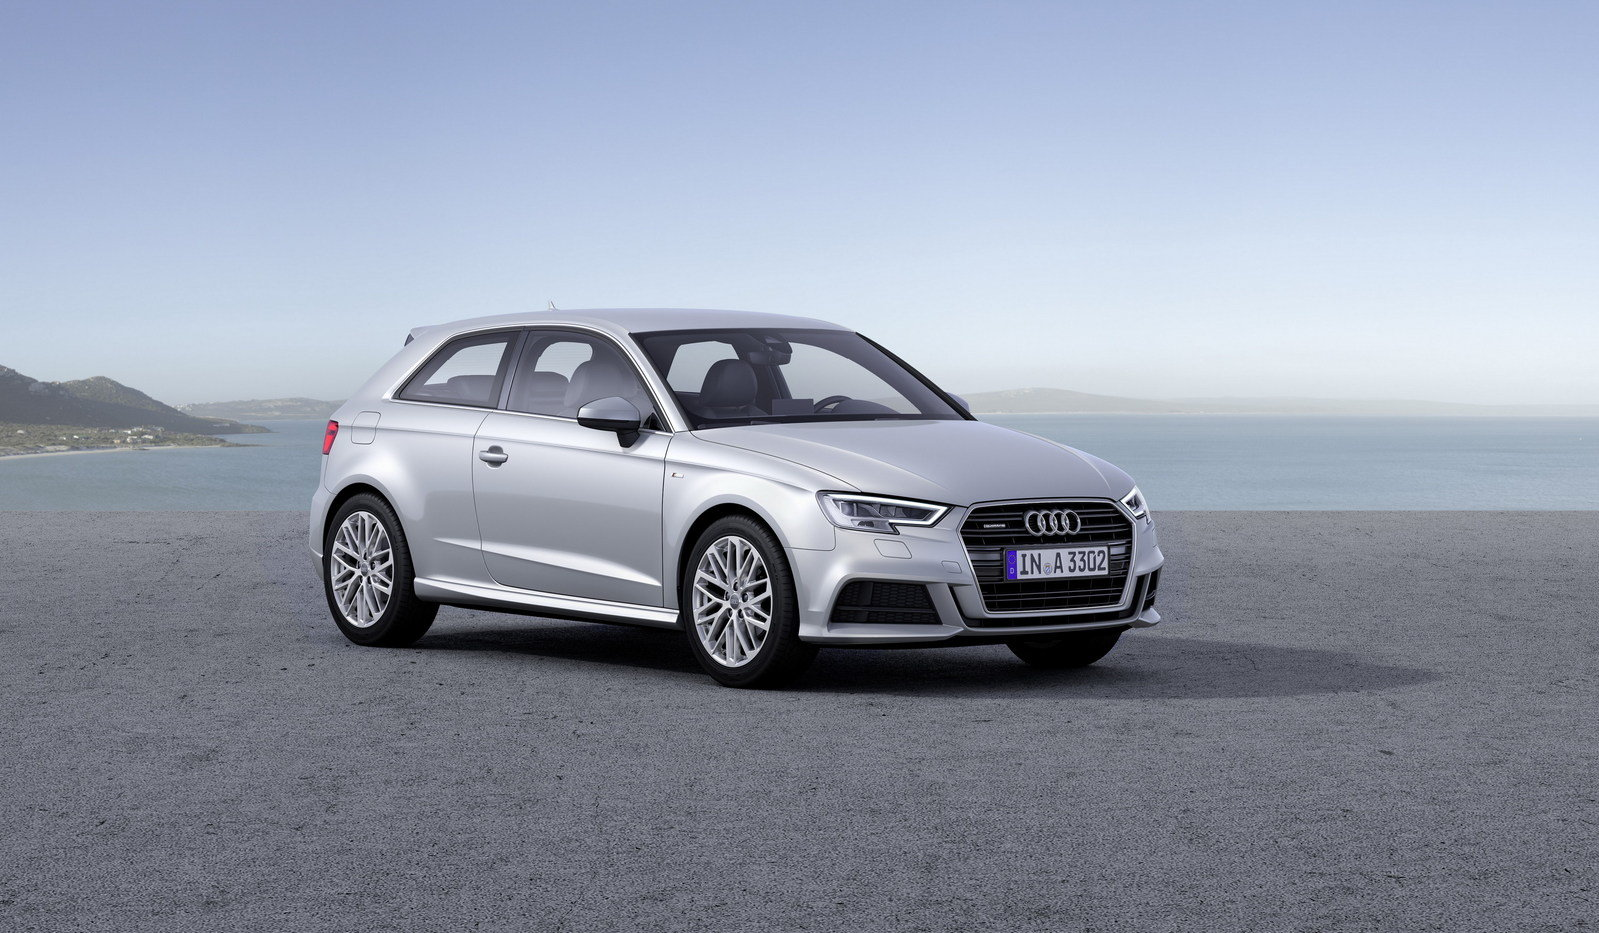 2017 audi a3 hatchback picture 671785 car review top speed. Black Bedroom Furniture Sets. Home Design Ideas